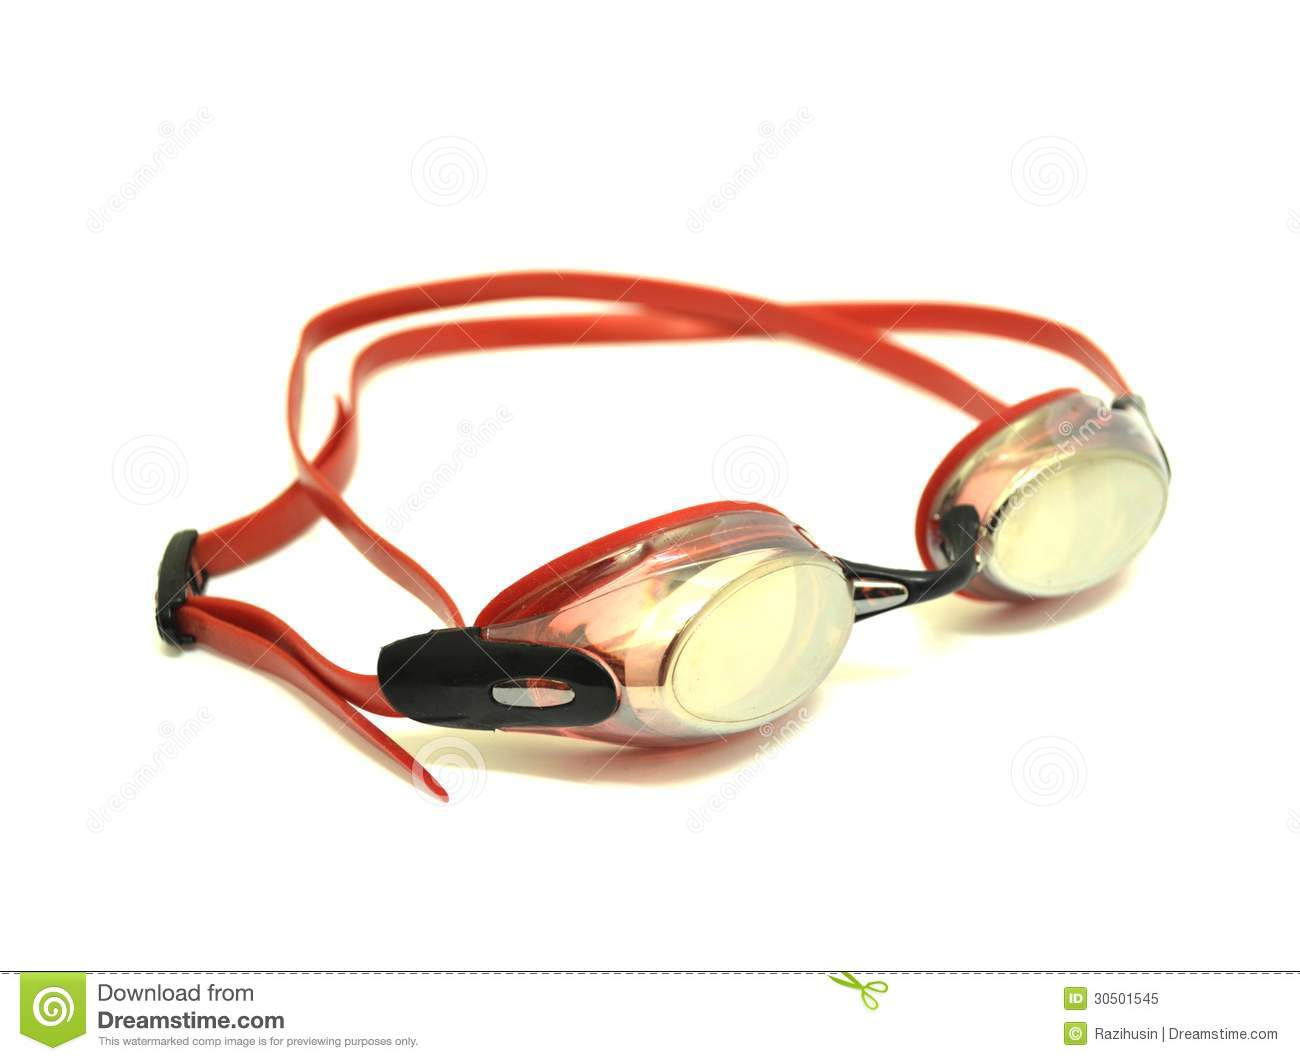 swimming goggles over glasses  Red Swimming Goggles Royalty Free Stock Photo - Image: 30501545